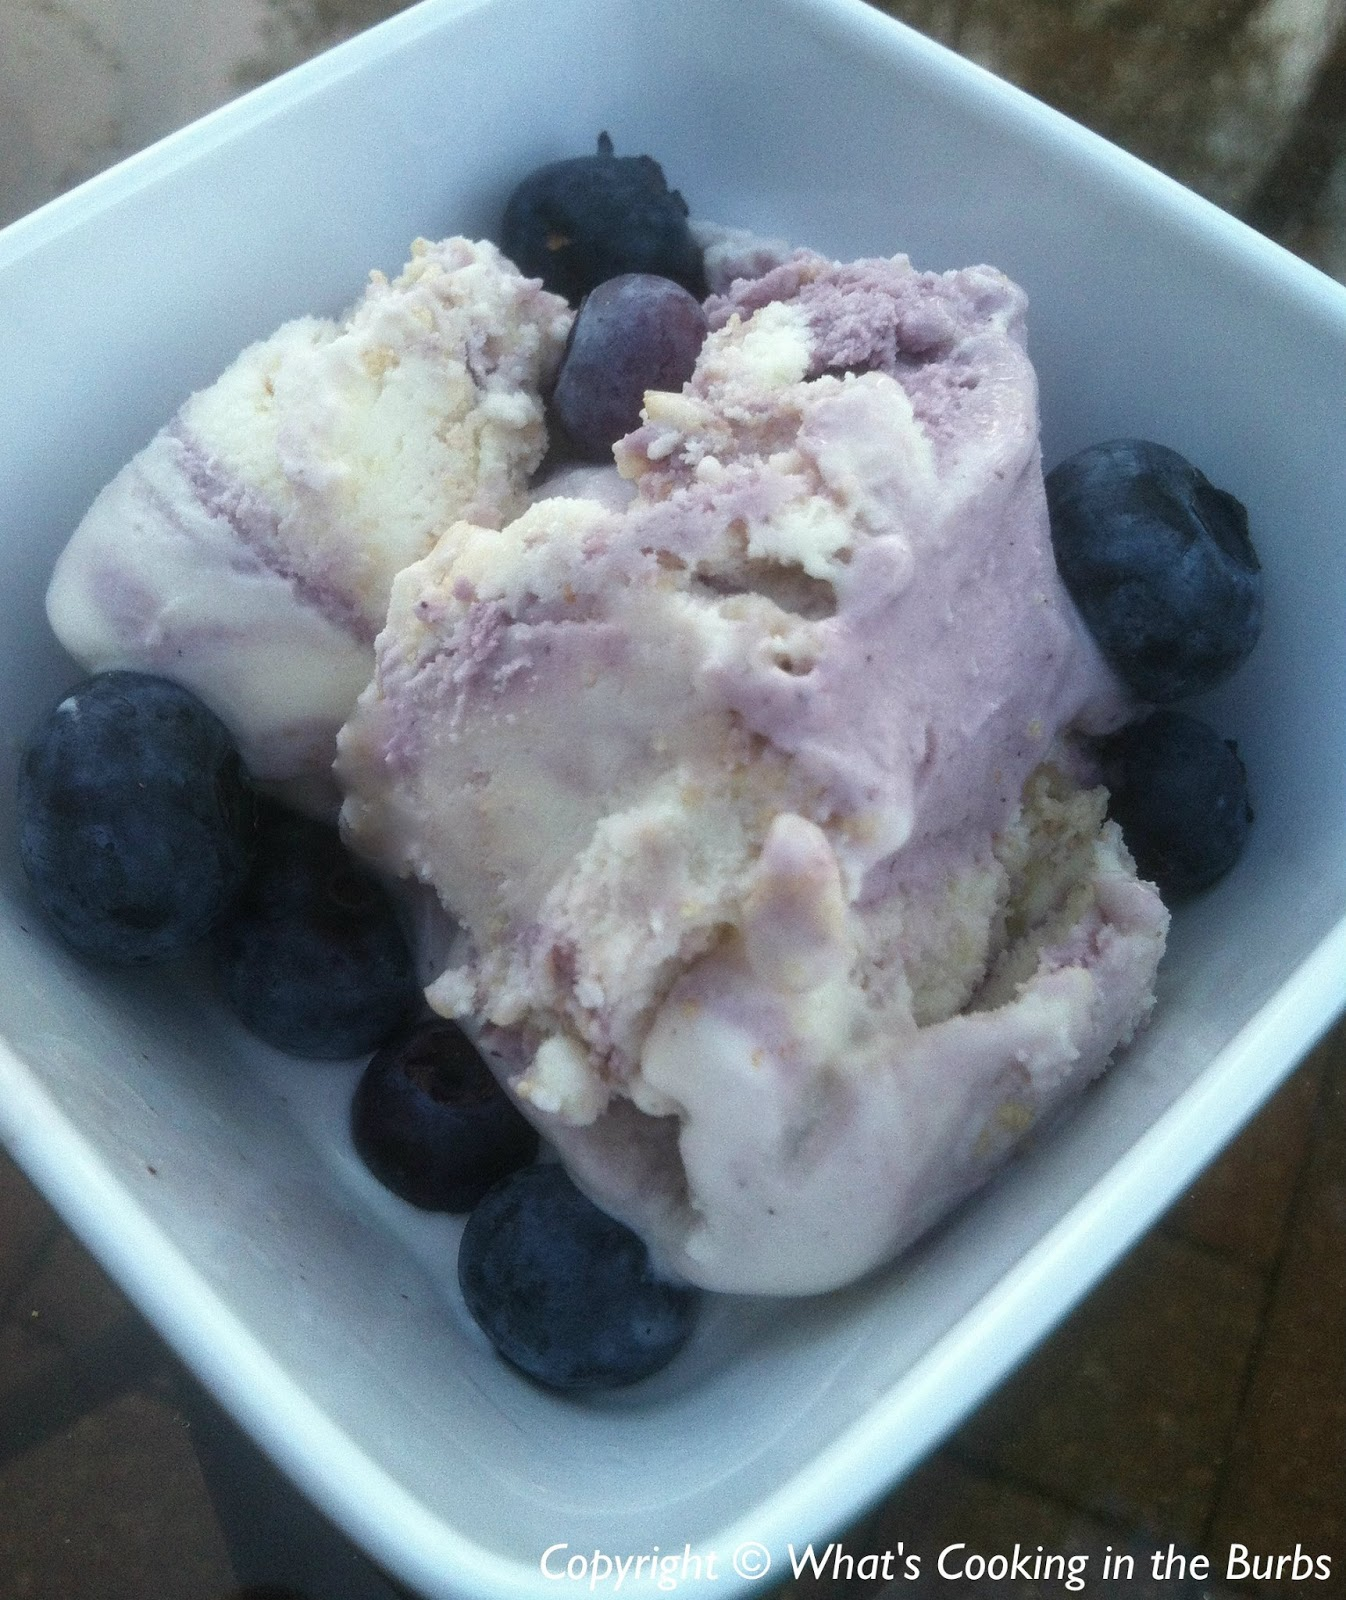 What's Cooking in the Burbs: Homemade Blueberry Frozen Yogurt